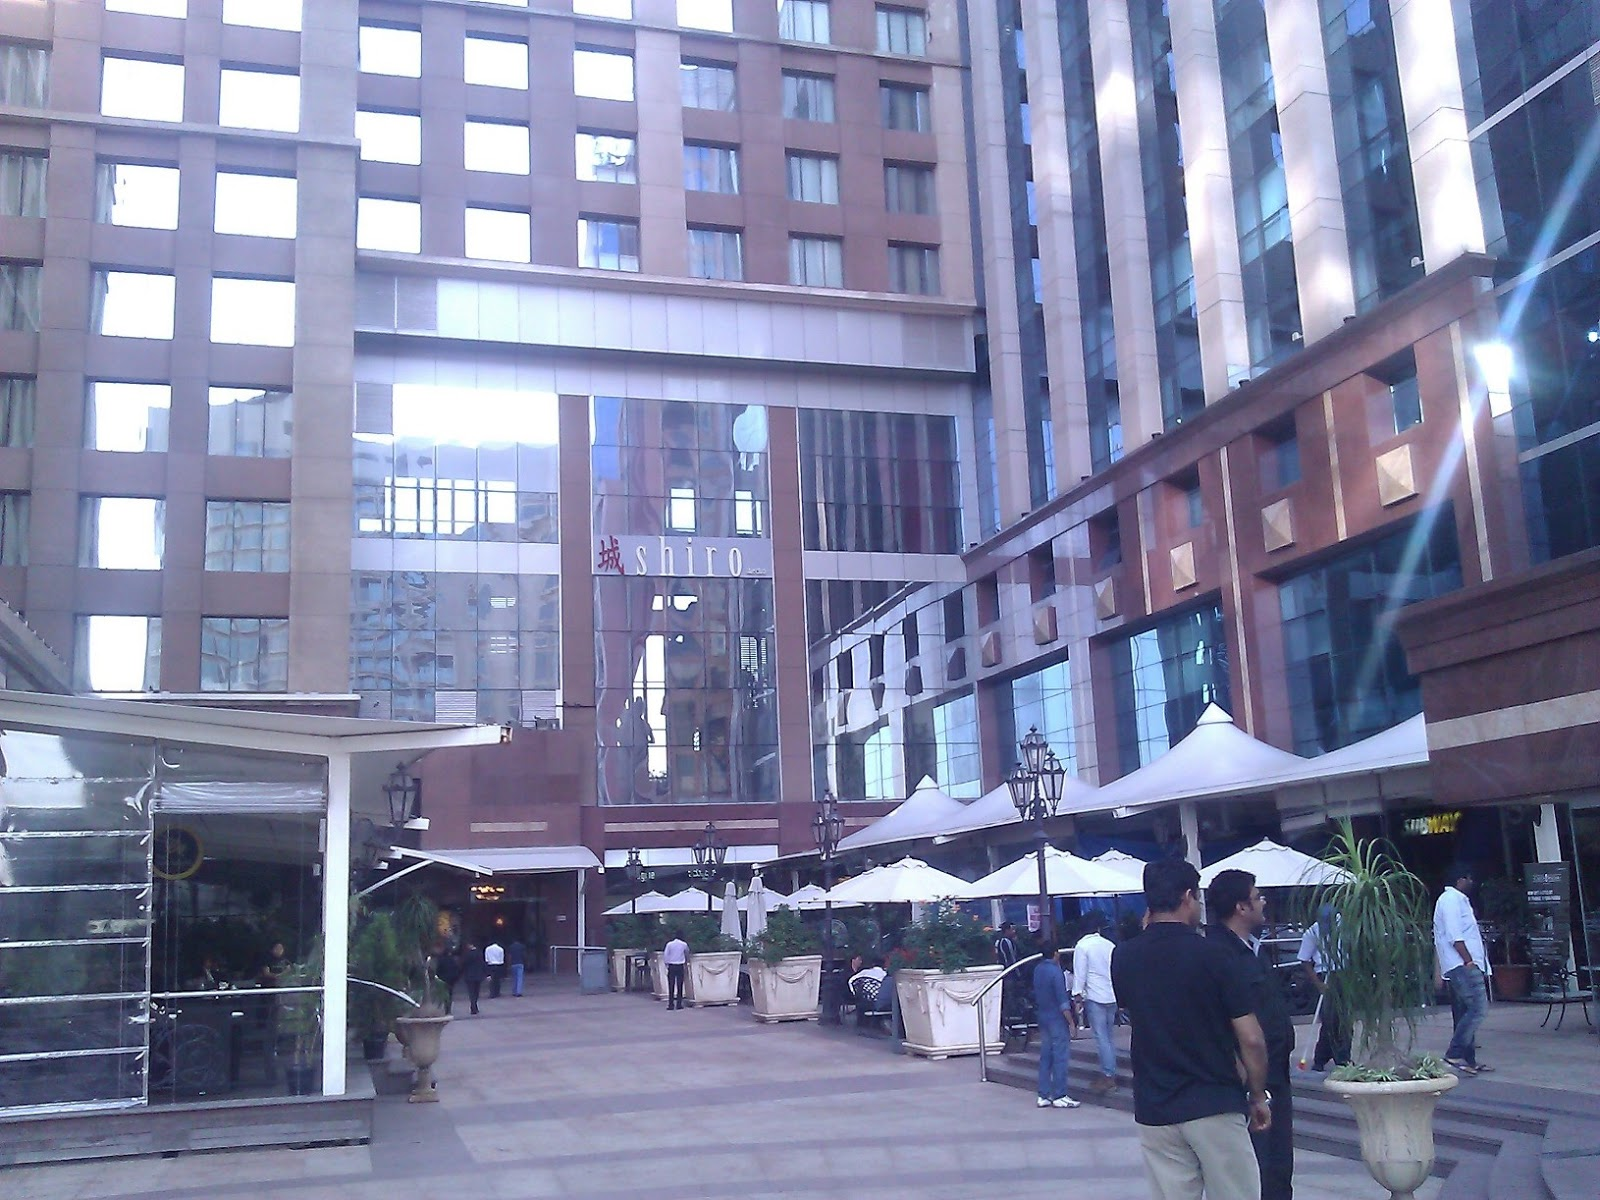 Another View Of The Ub City Food Plaza